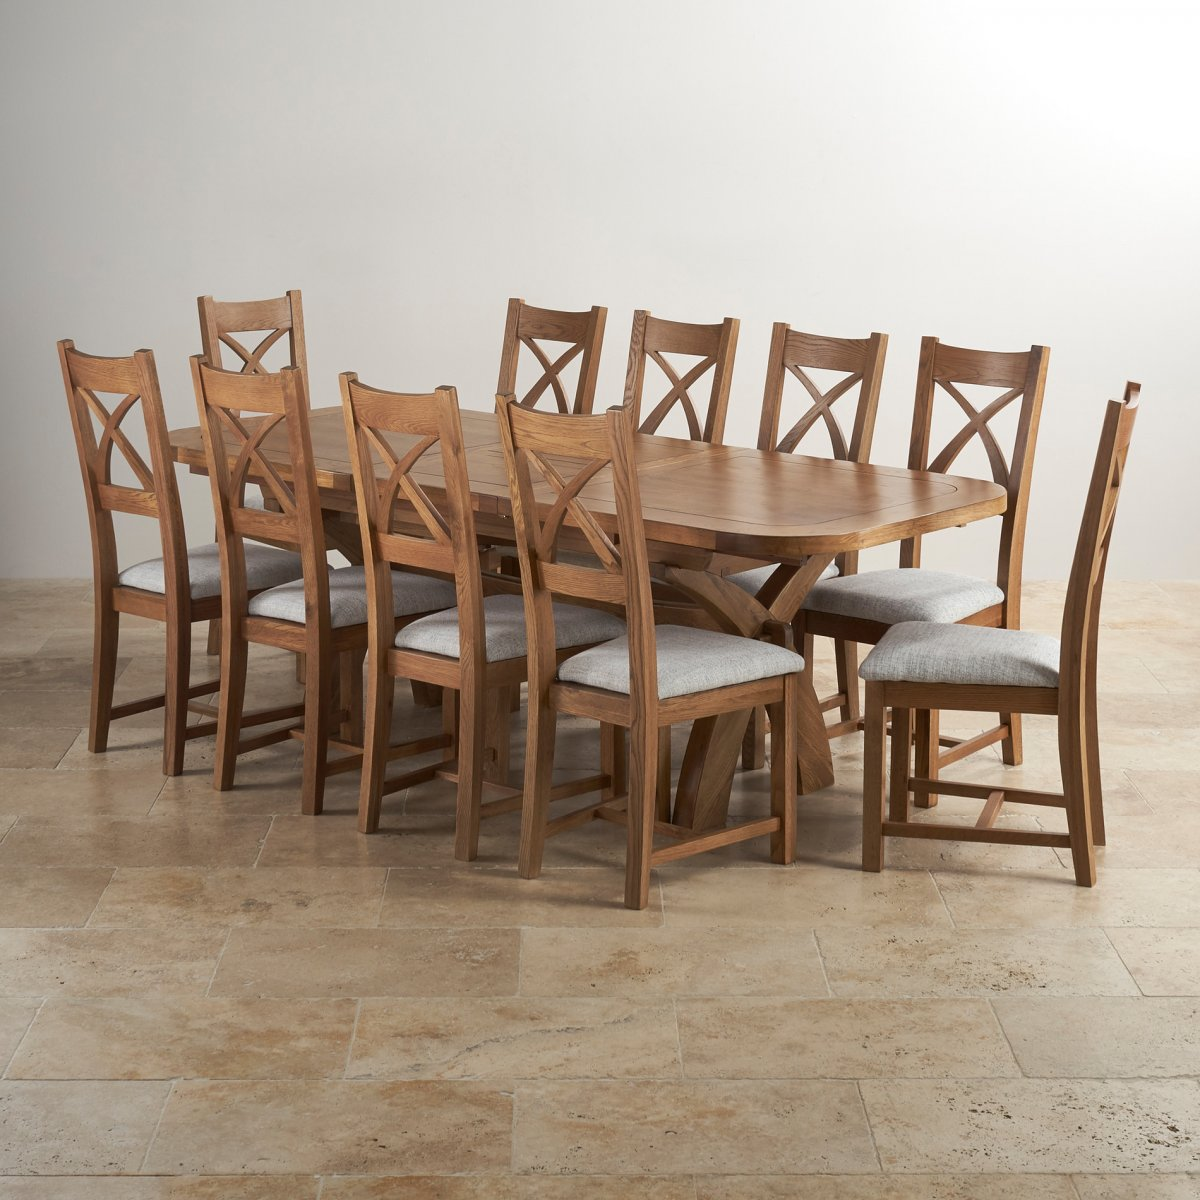 Hercules 6ft Extending Dining Set In Rustic Solid Oak 10 Cross Back Plain Grey Fabric Chairs